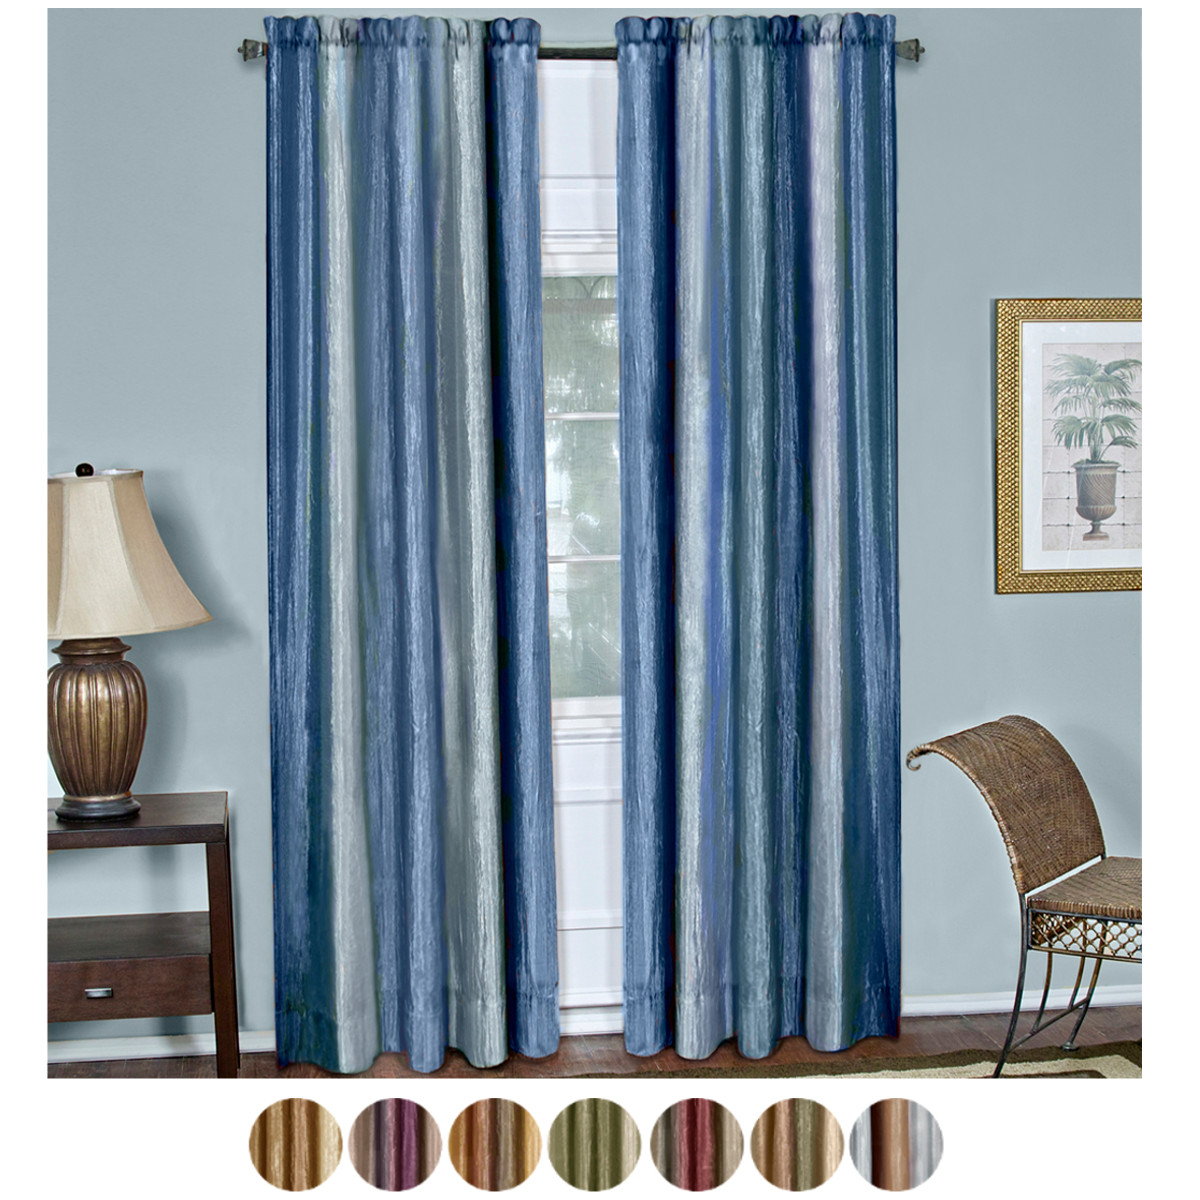 White Micro Striped Semi Sheer Window Curtain Pieces Pertaining To Most Recent Details About Multi Color 2 Panel Pack Striped Modern Semi Sheer Window Curtain Drape (View 8 of 20)